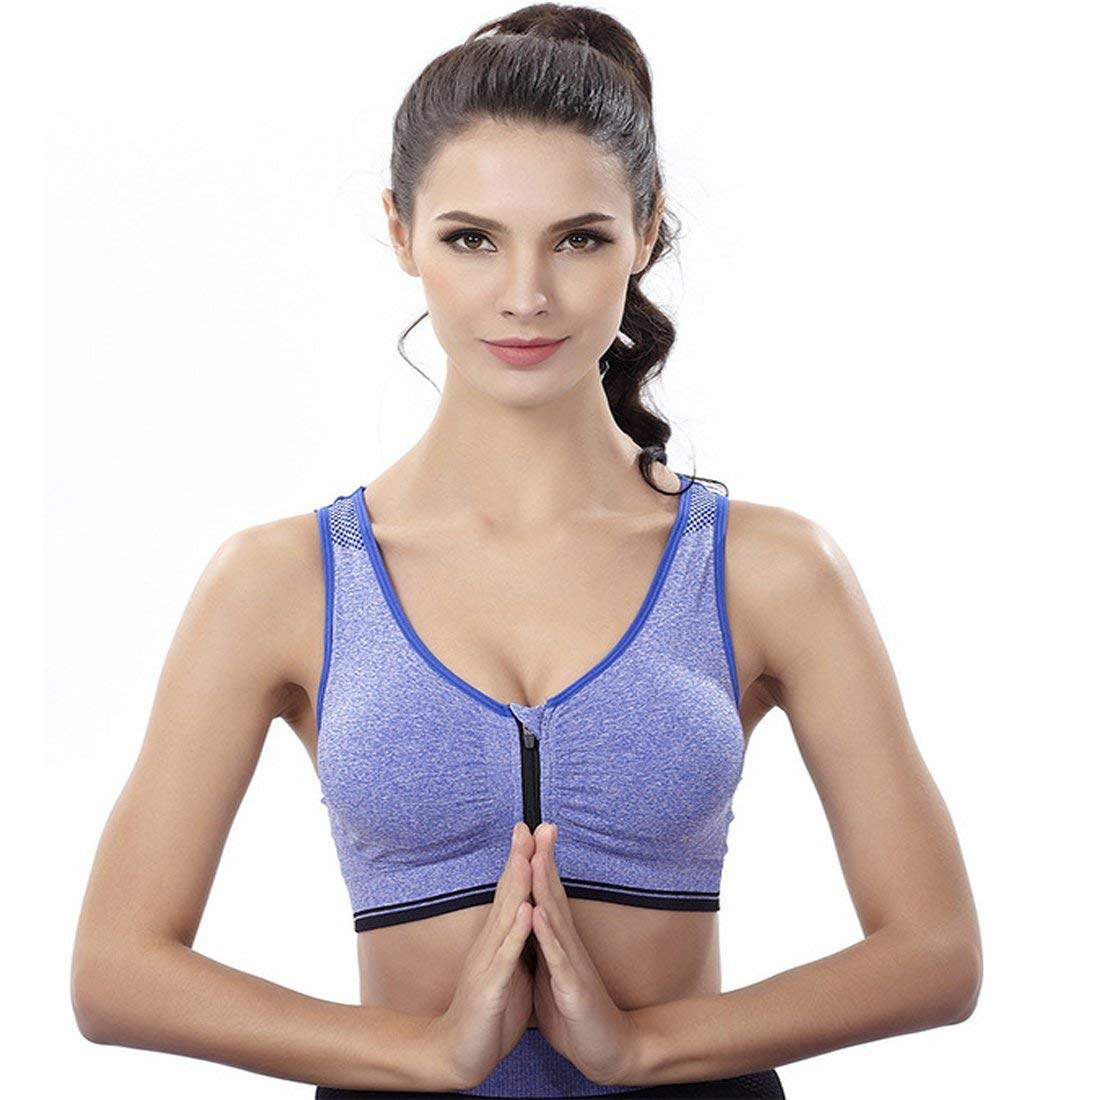 0e4916667c Get Quotations · Women s Racerback Sports Bra With Zip Front High Impact  Workout Gym Active Yoga Sports Bras